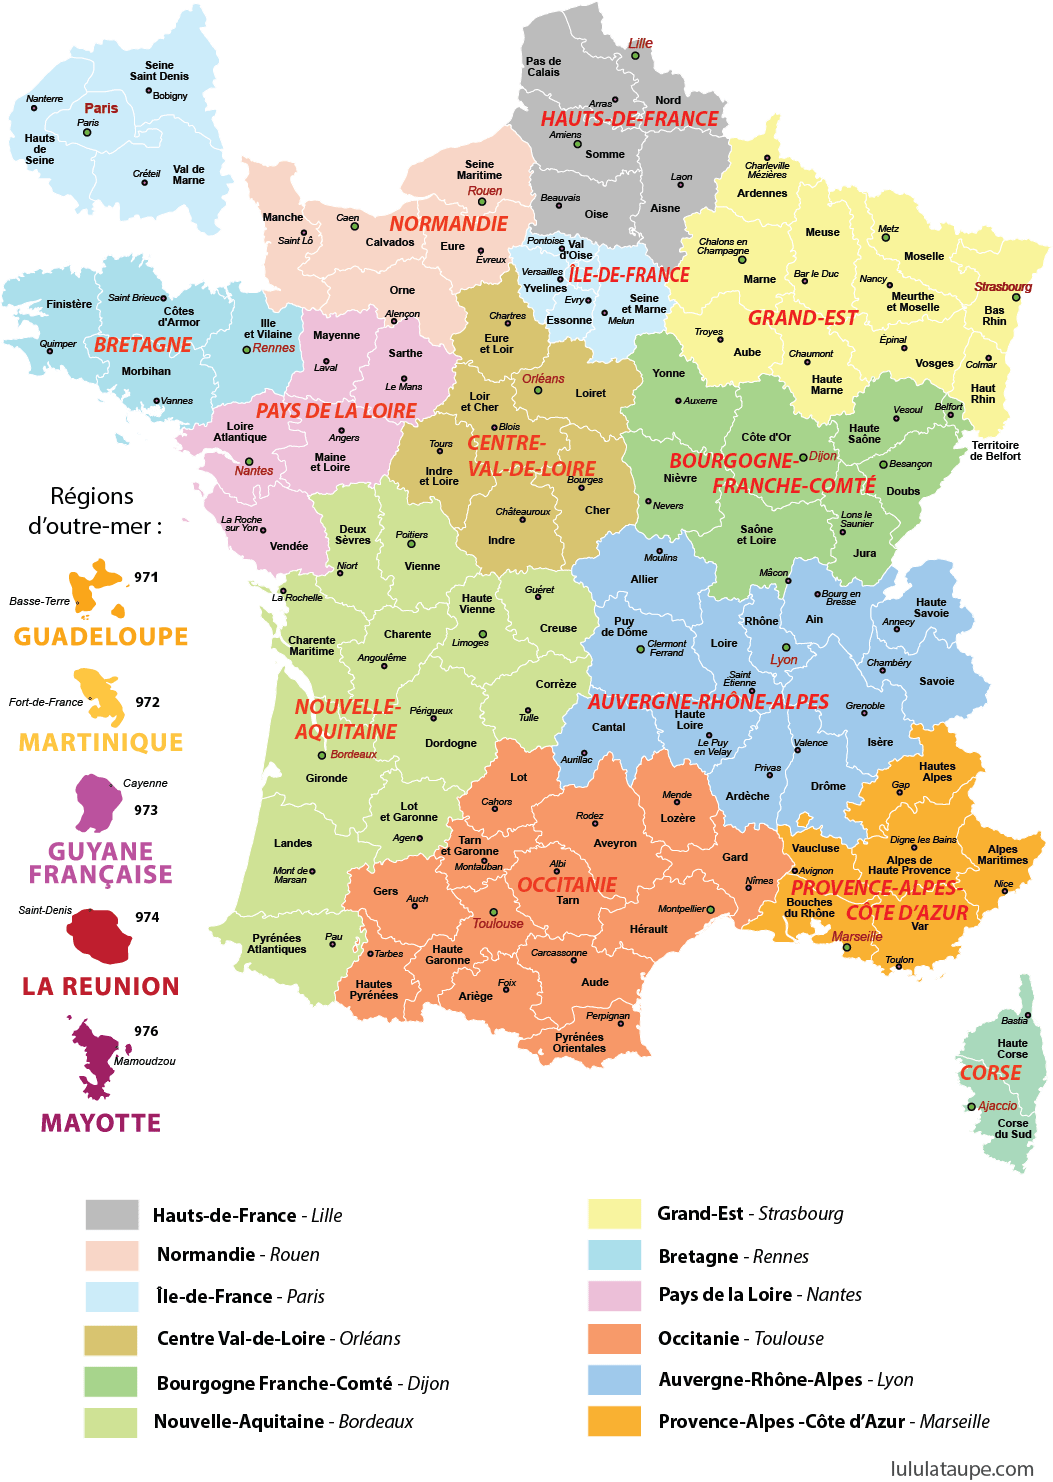 Carte Des 13 Regions De France A Imprimer Departements Prefectures Carte De France A Imprimer Carte De France Departement Carte De France Region